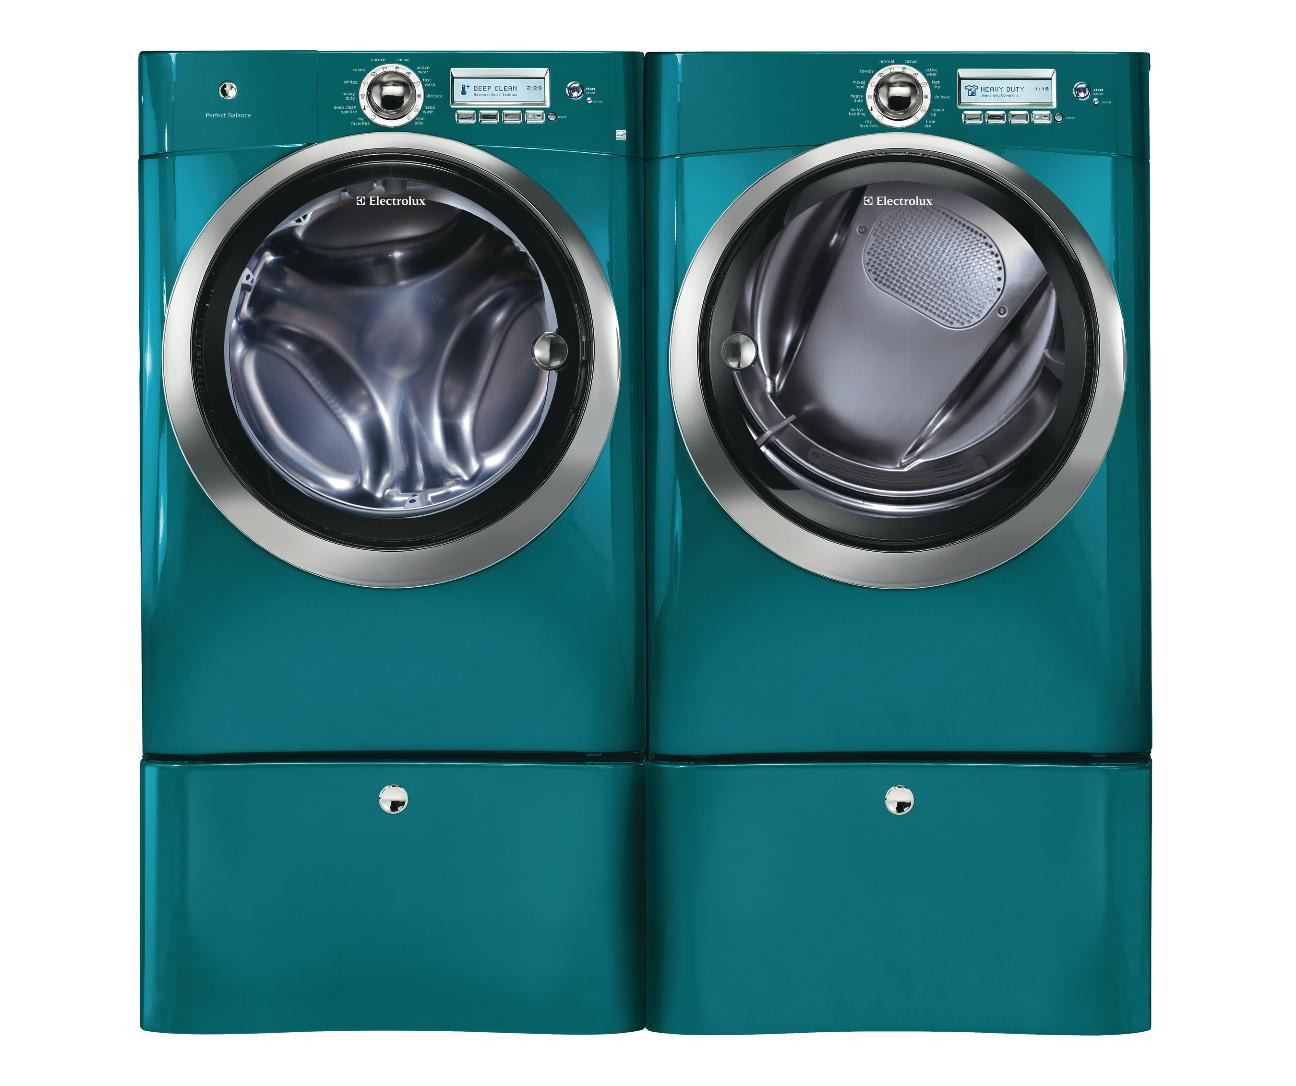 energy saving large capacity washer from electrolux. Black Bedroom Furniture Sets. Home Design Ideas